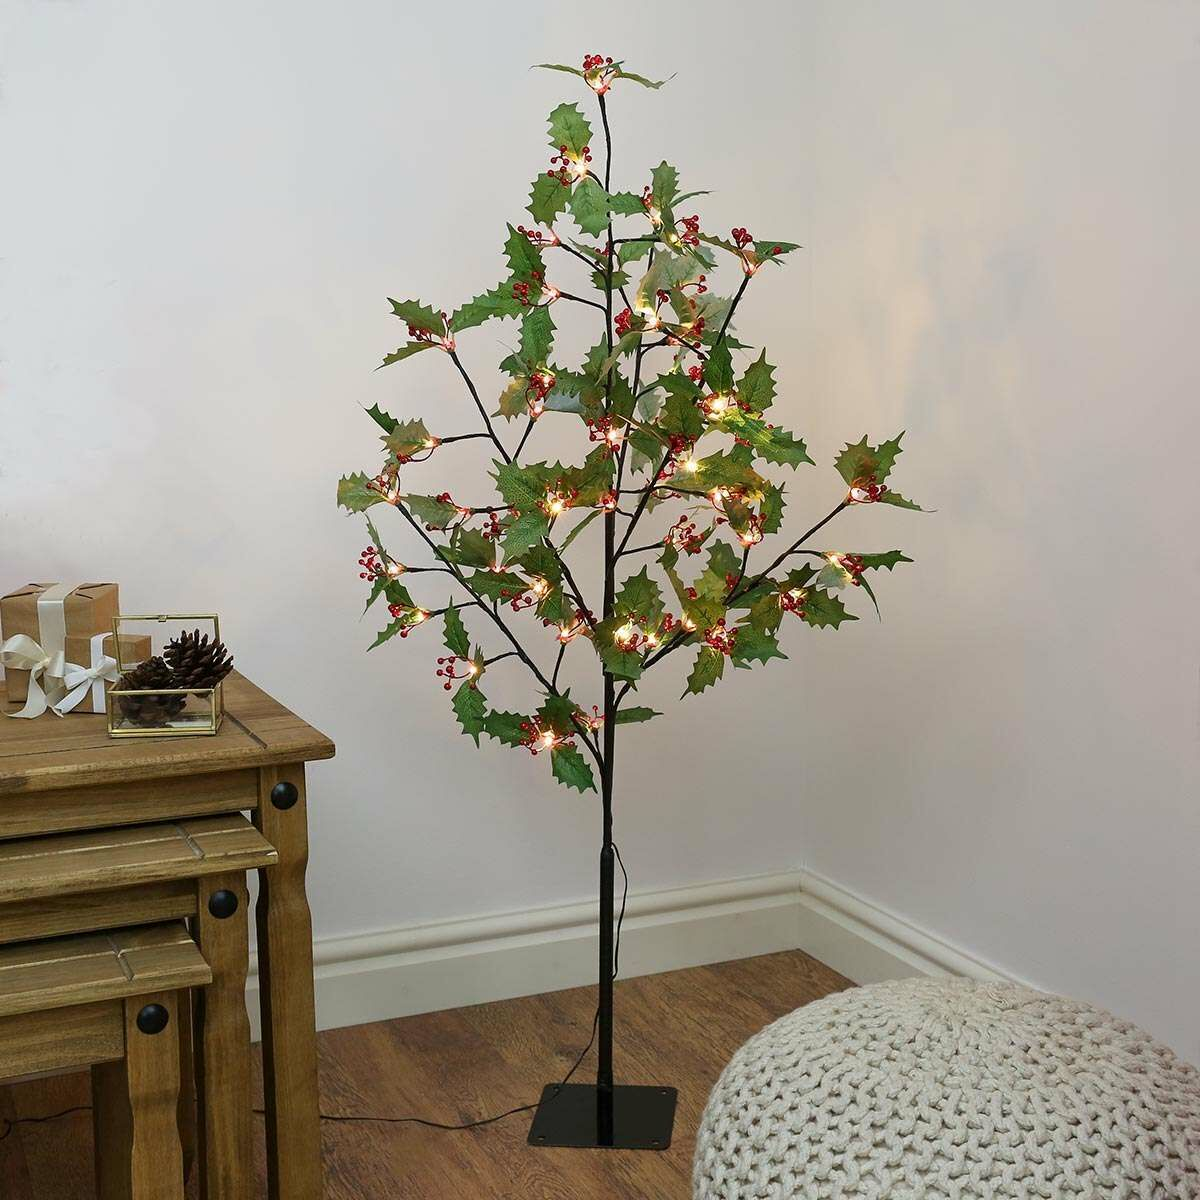 4ft Christmas Holly Leaf Tree with Red Berries